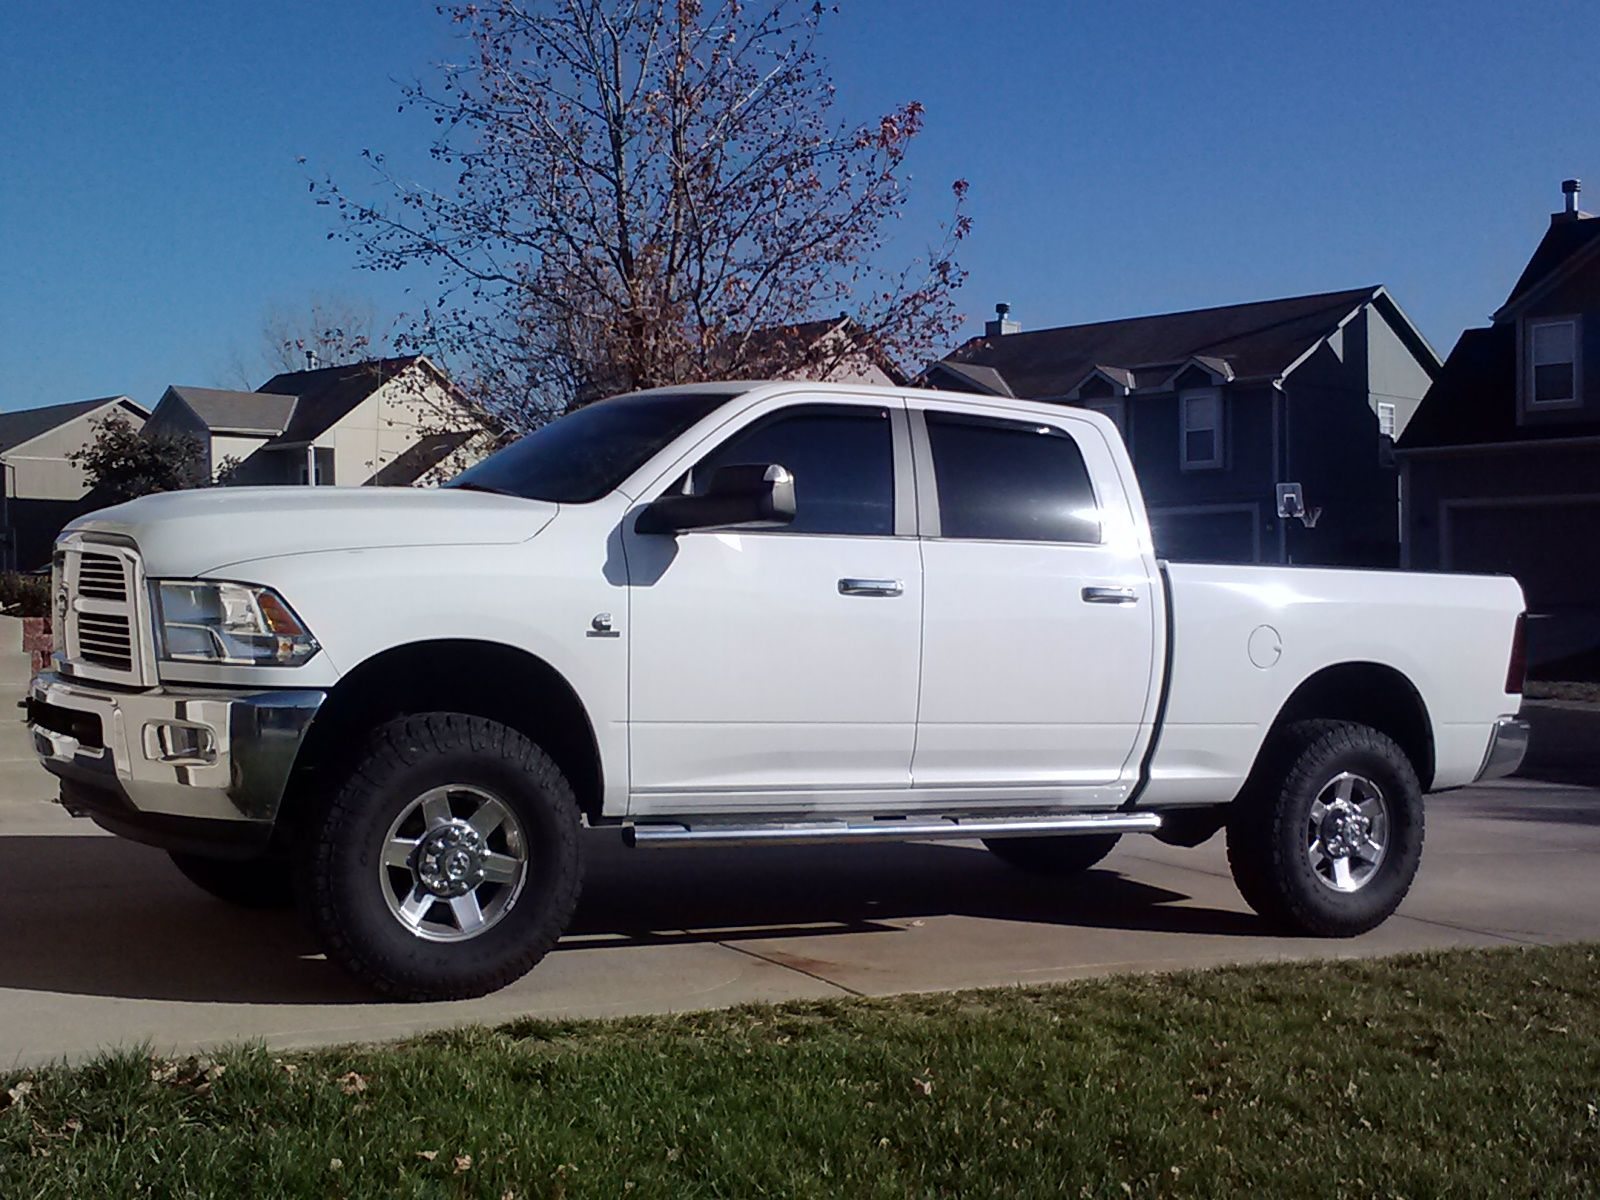 Fastest Diesel Truck >> Dodge Ram 2500 With 35s On Stock Wheels In Fastest Stock